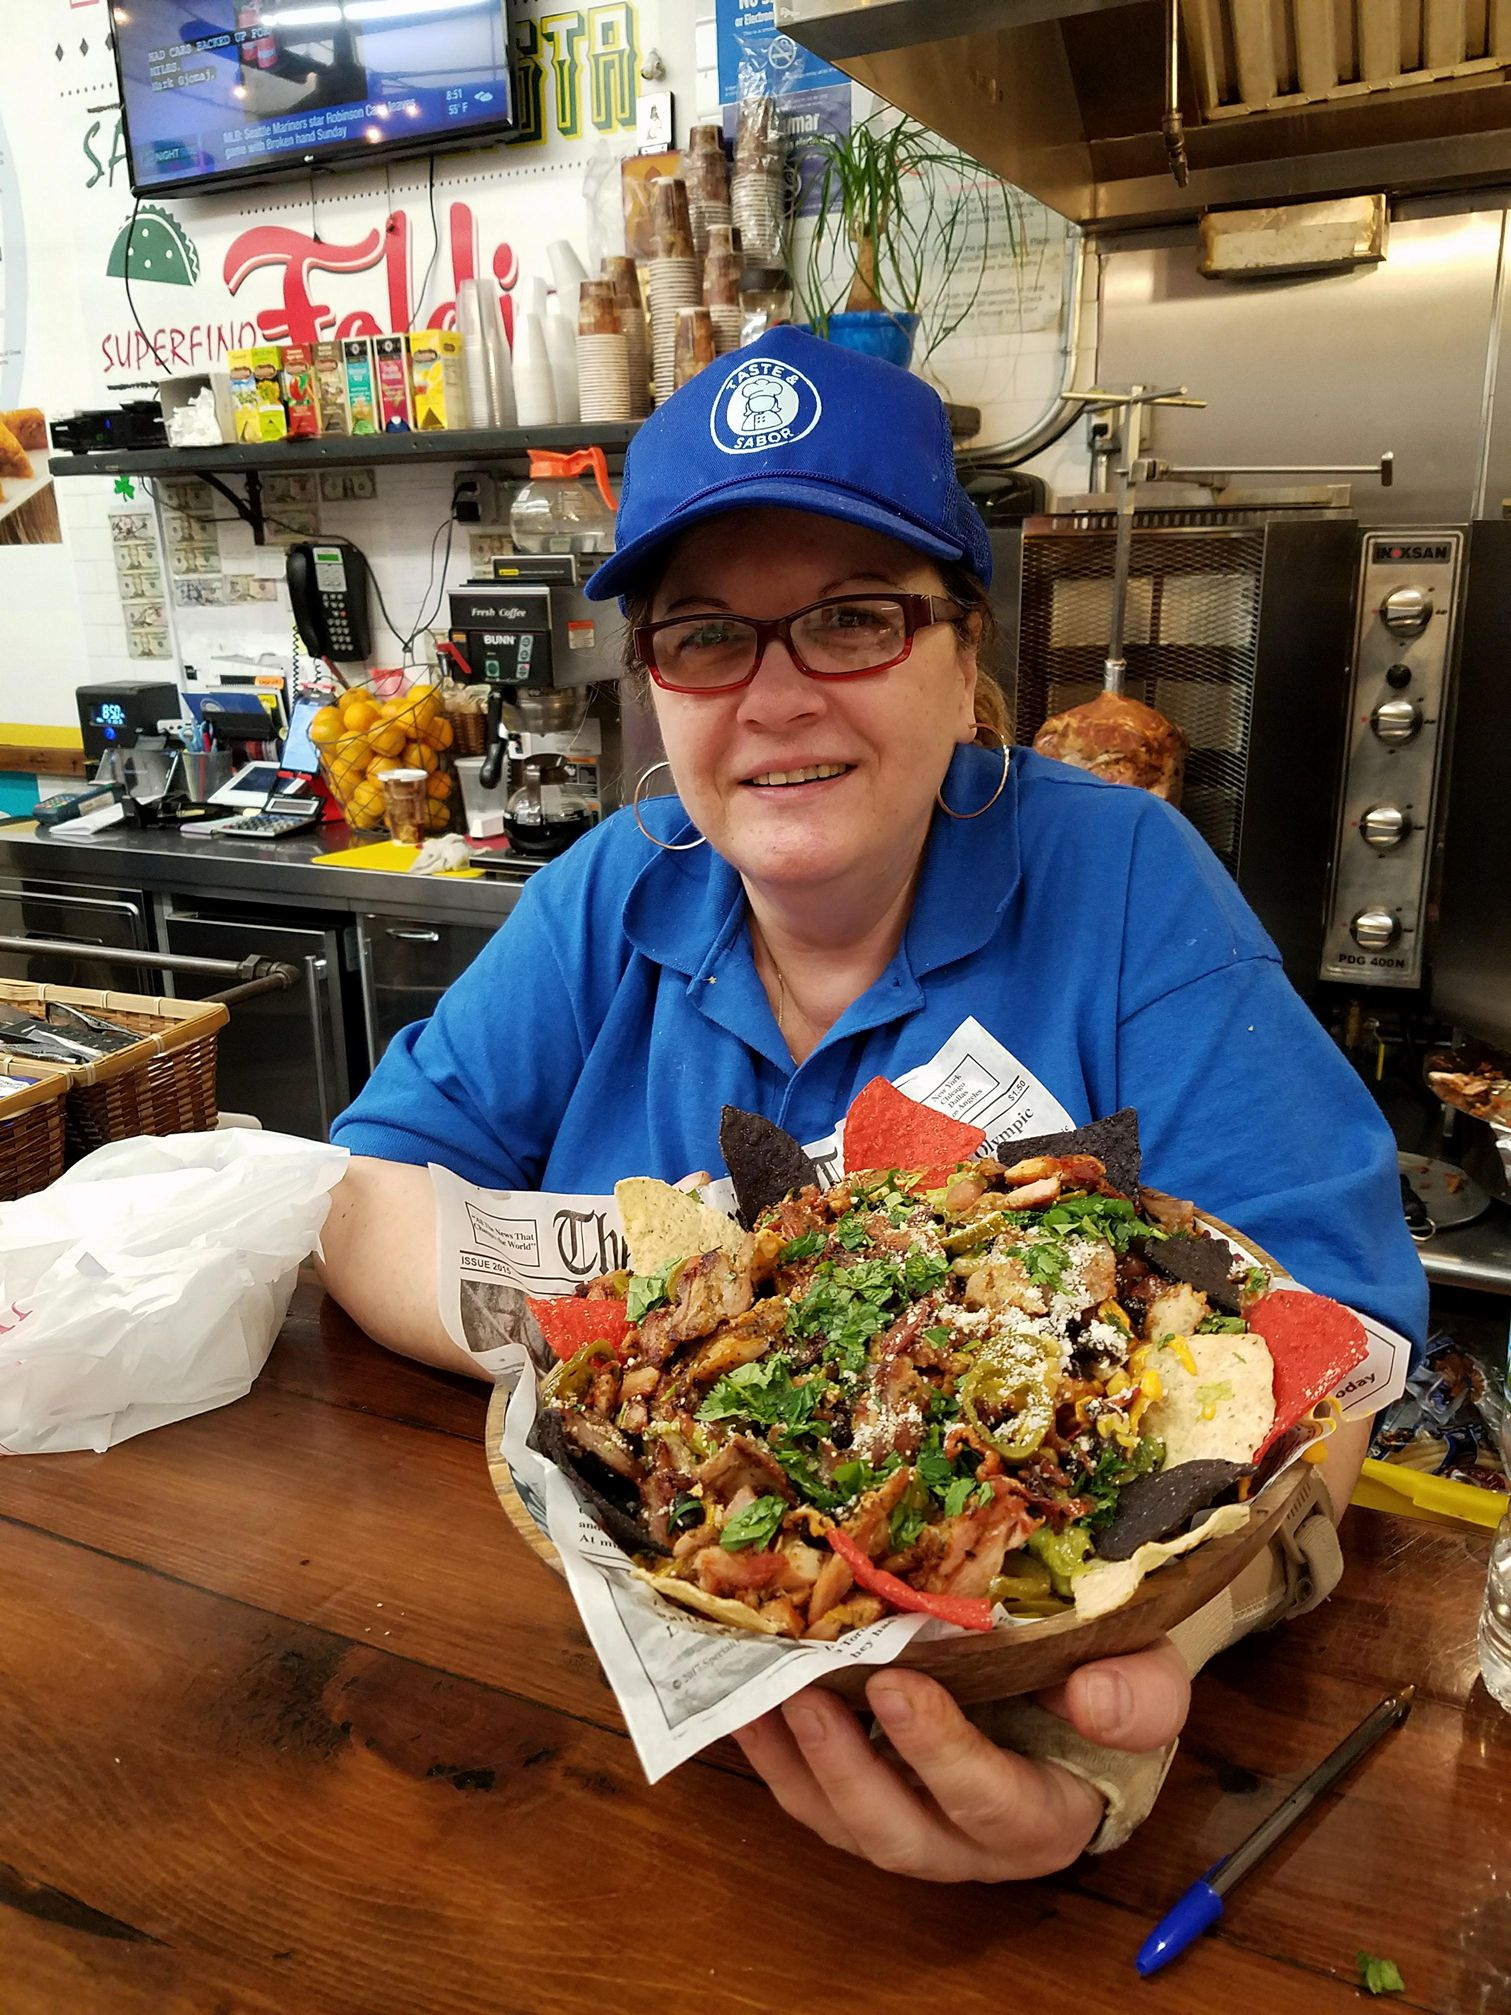 An image of a food employee at taste & sabor, A greek mexican restaurant in Kingsbridge, NY